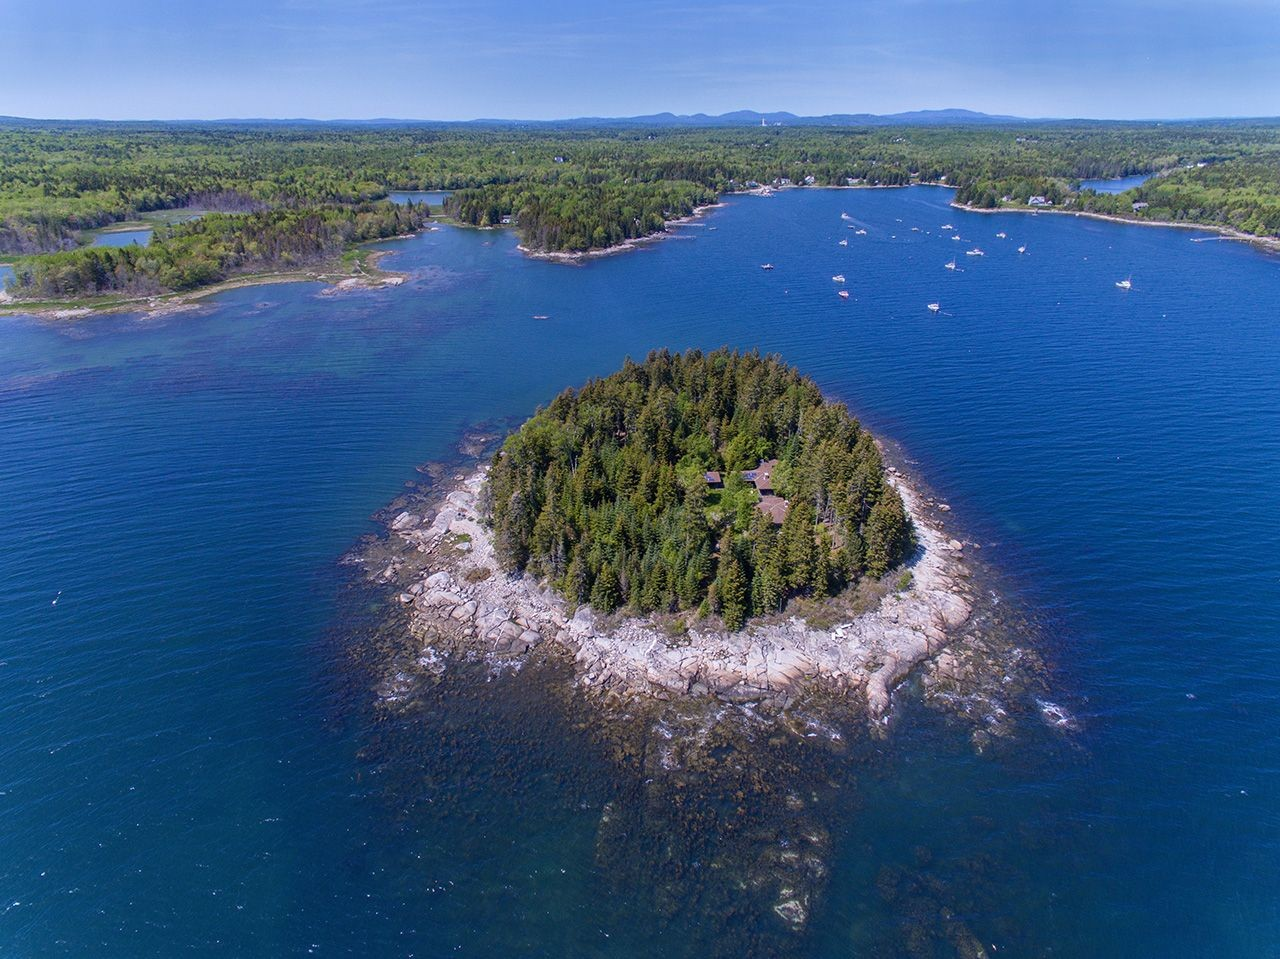 ram island a luxury single family home for sale in st. george, maine property id 230107053 christie s international real estate